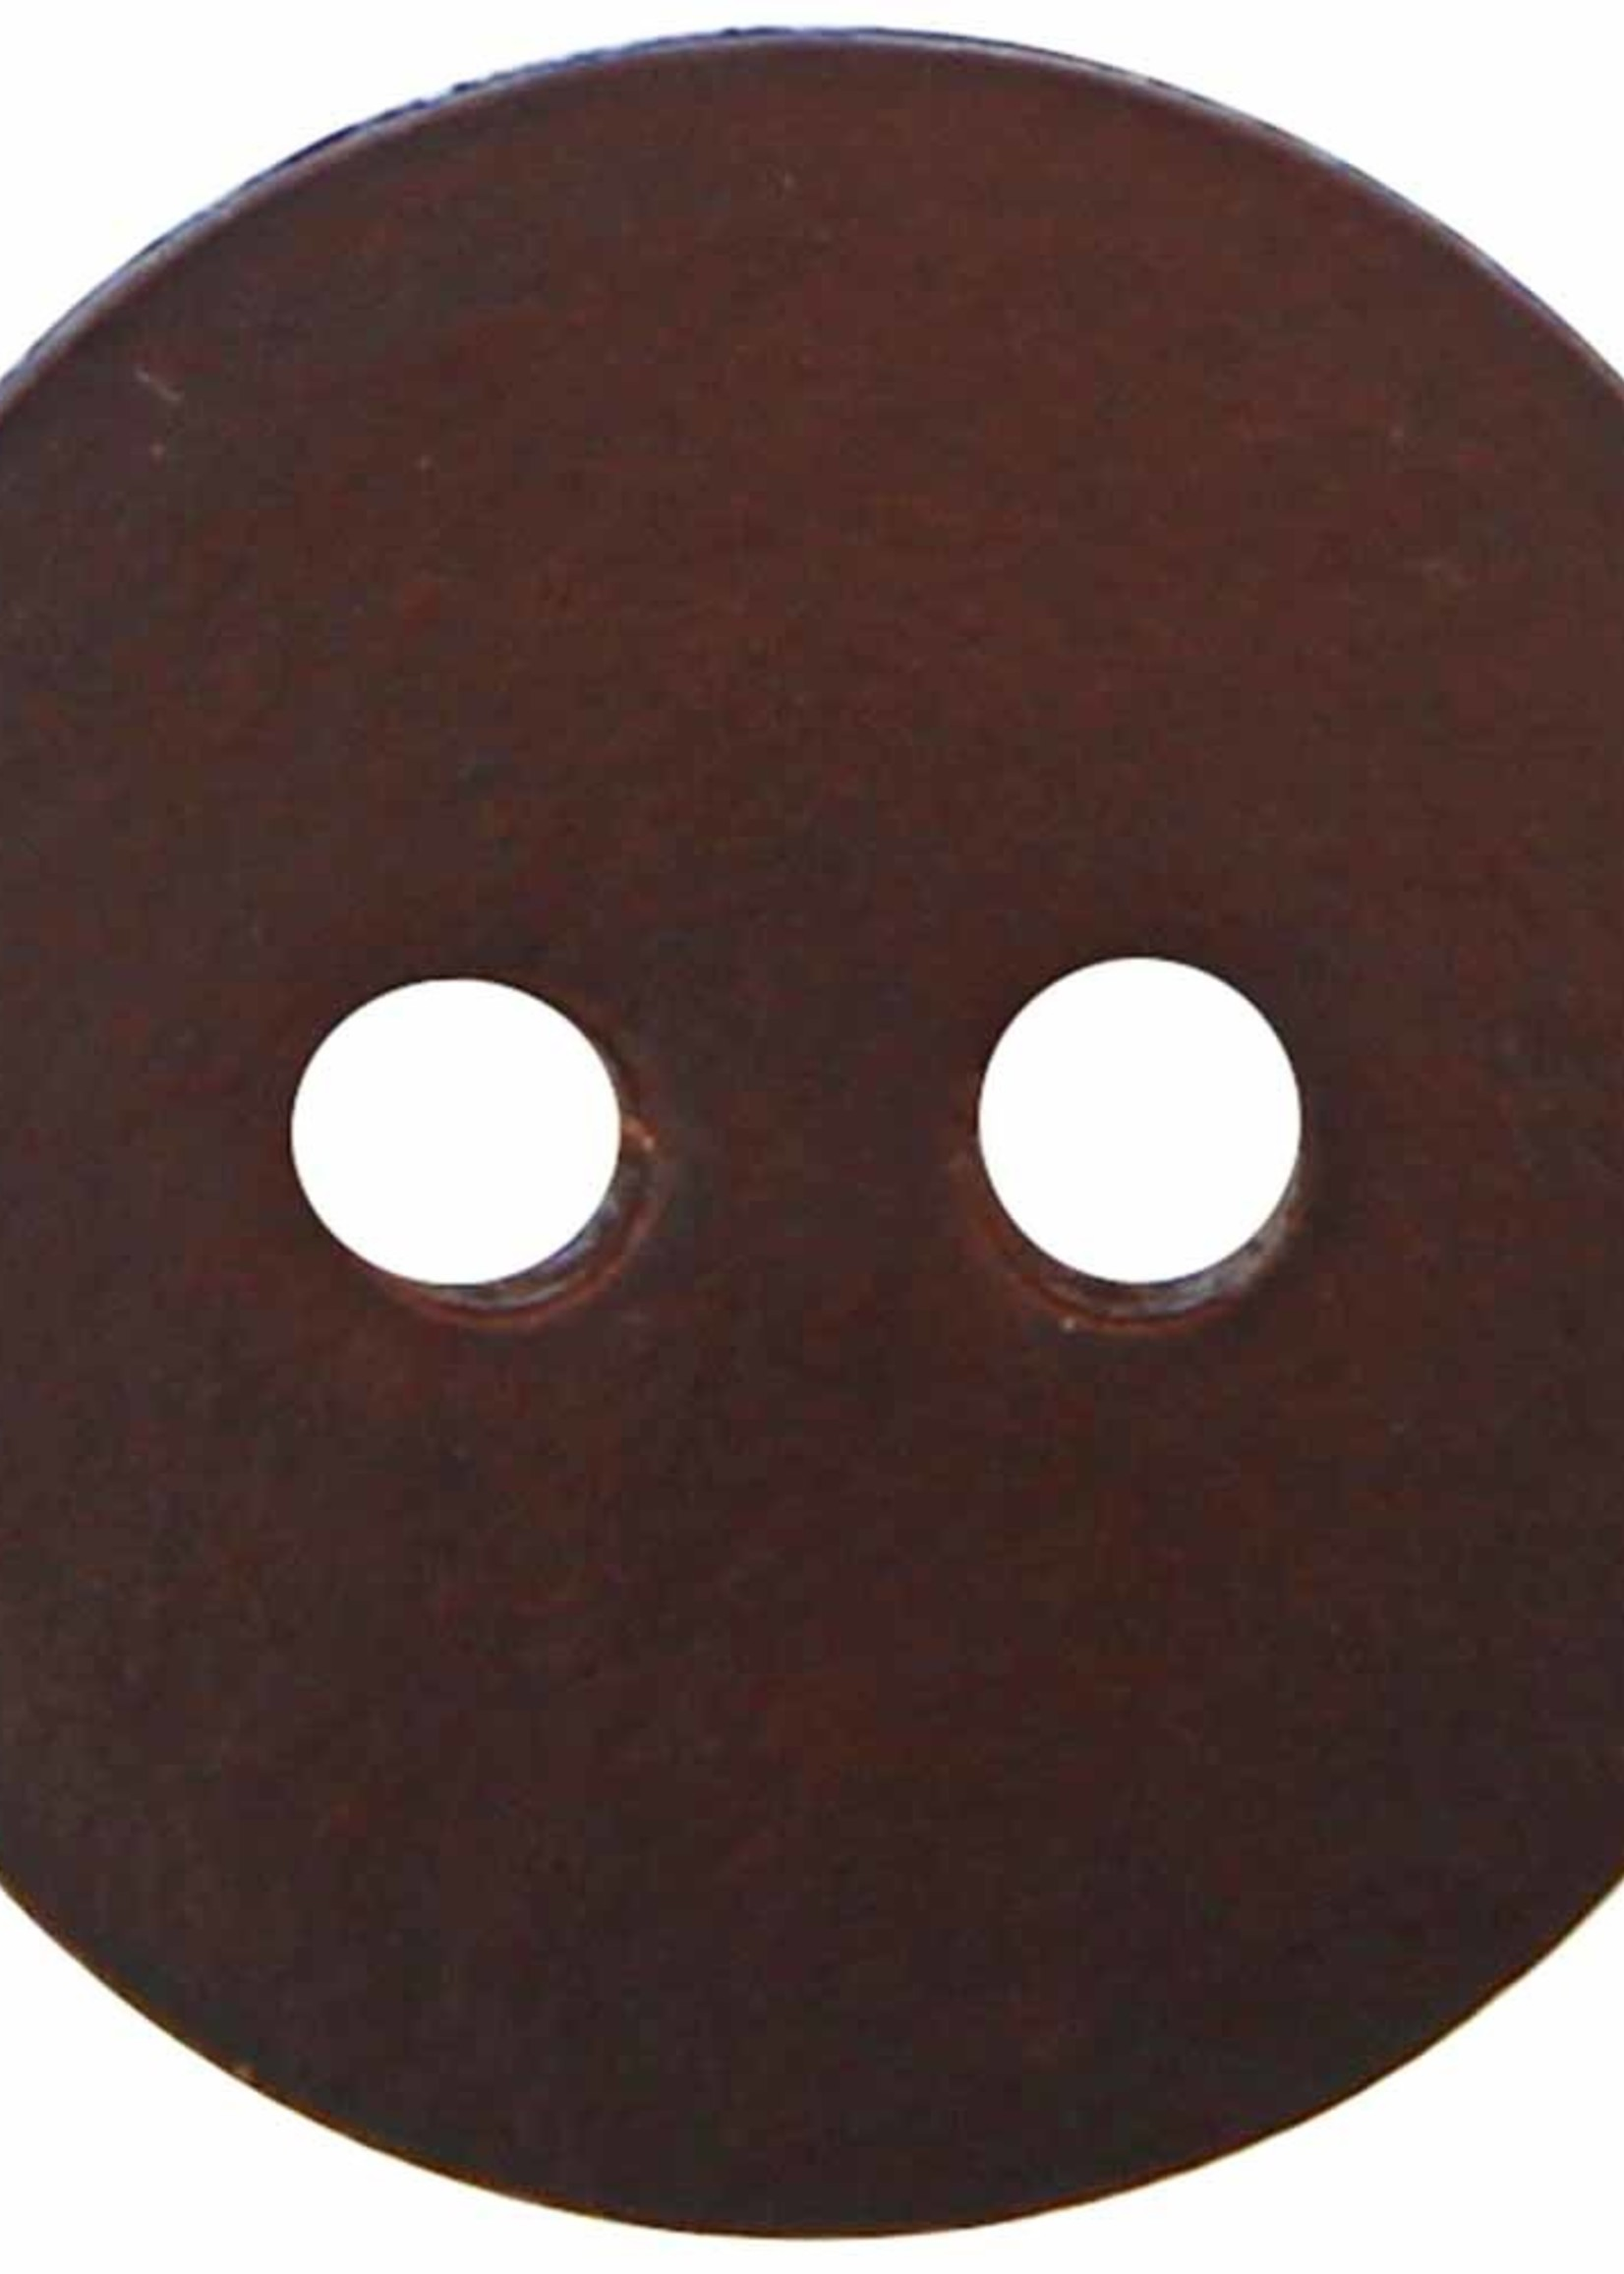 """Inspire Inspire Buttons 2 hole button leather brown 3/4"""" 9800770"""